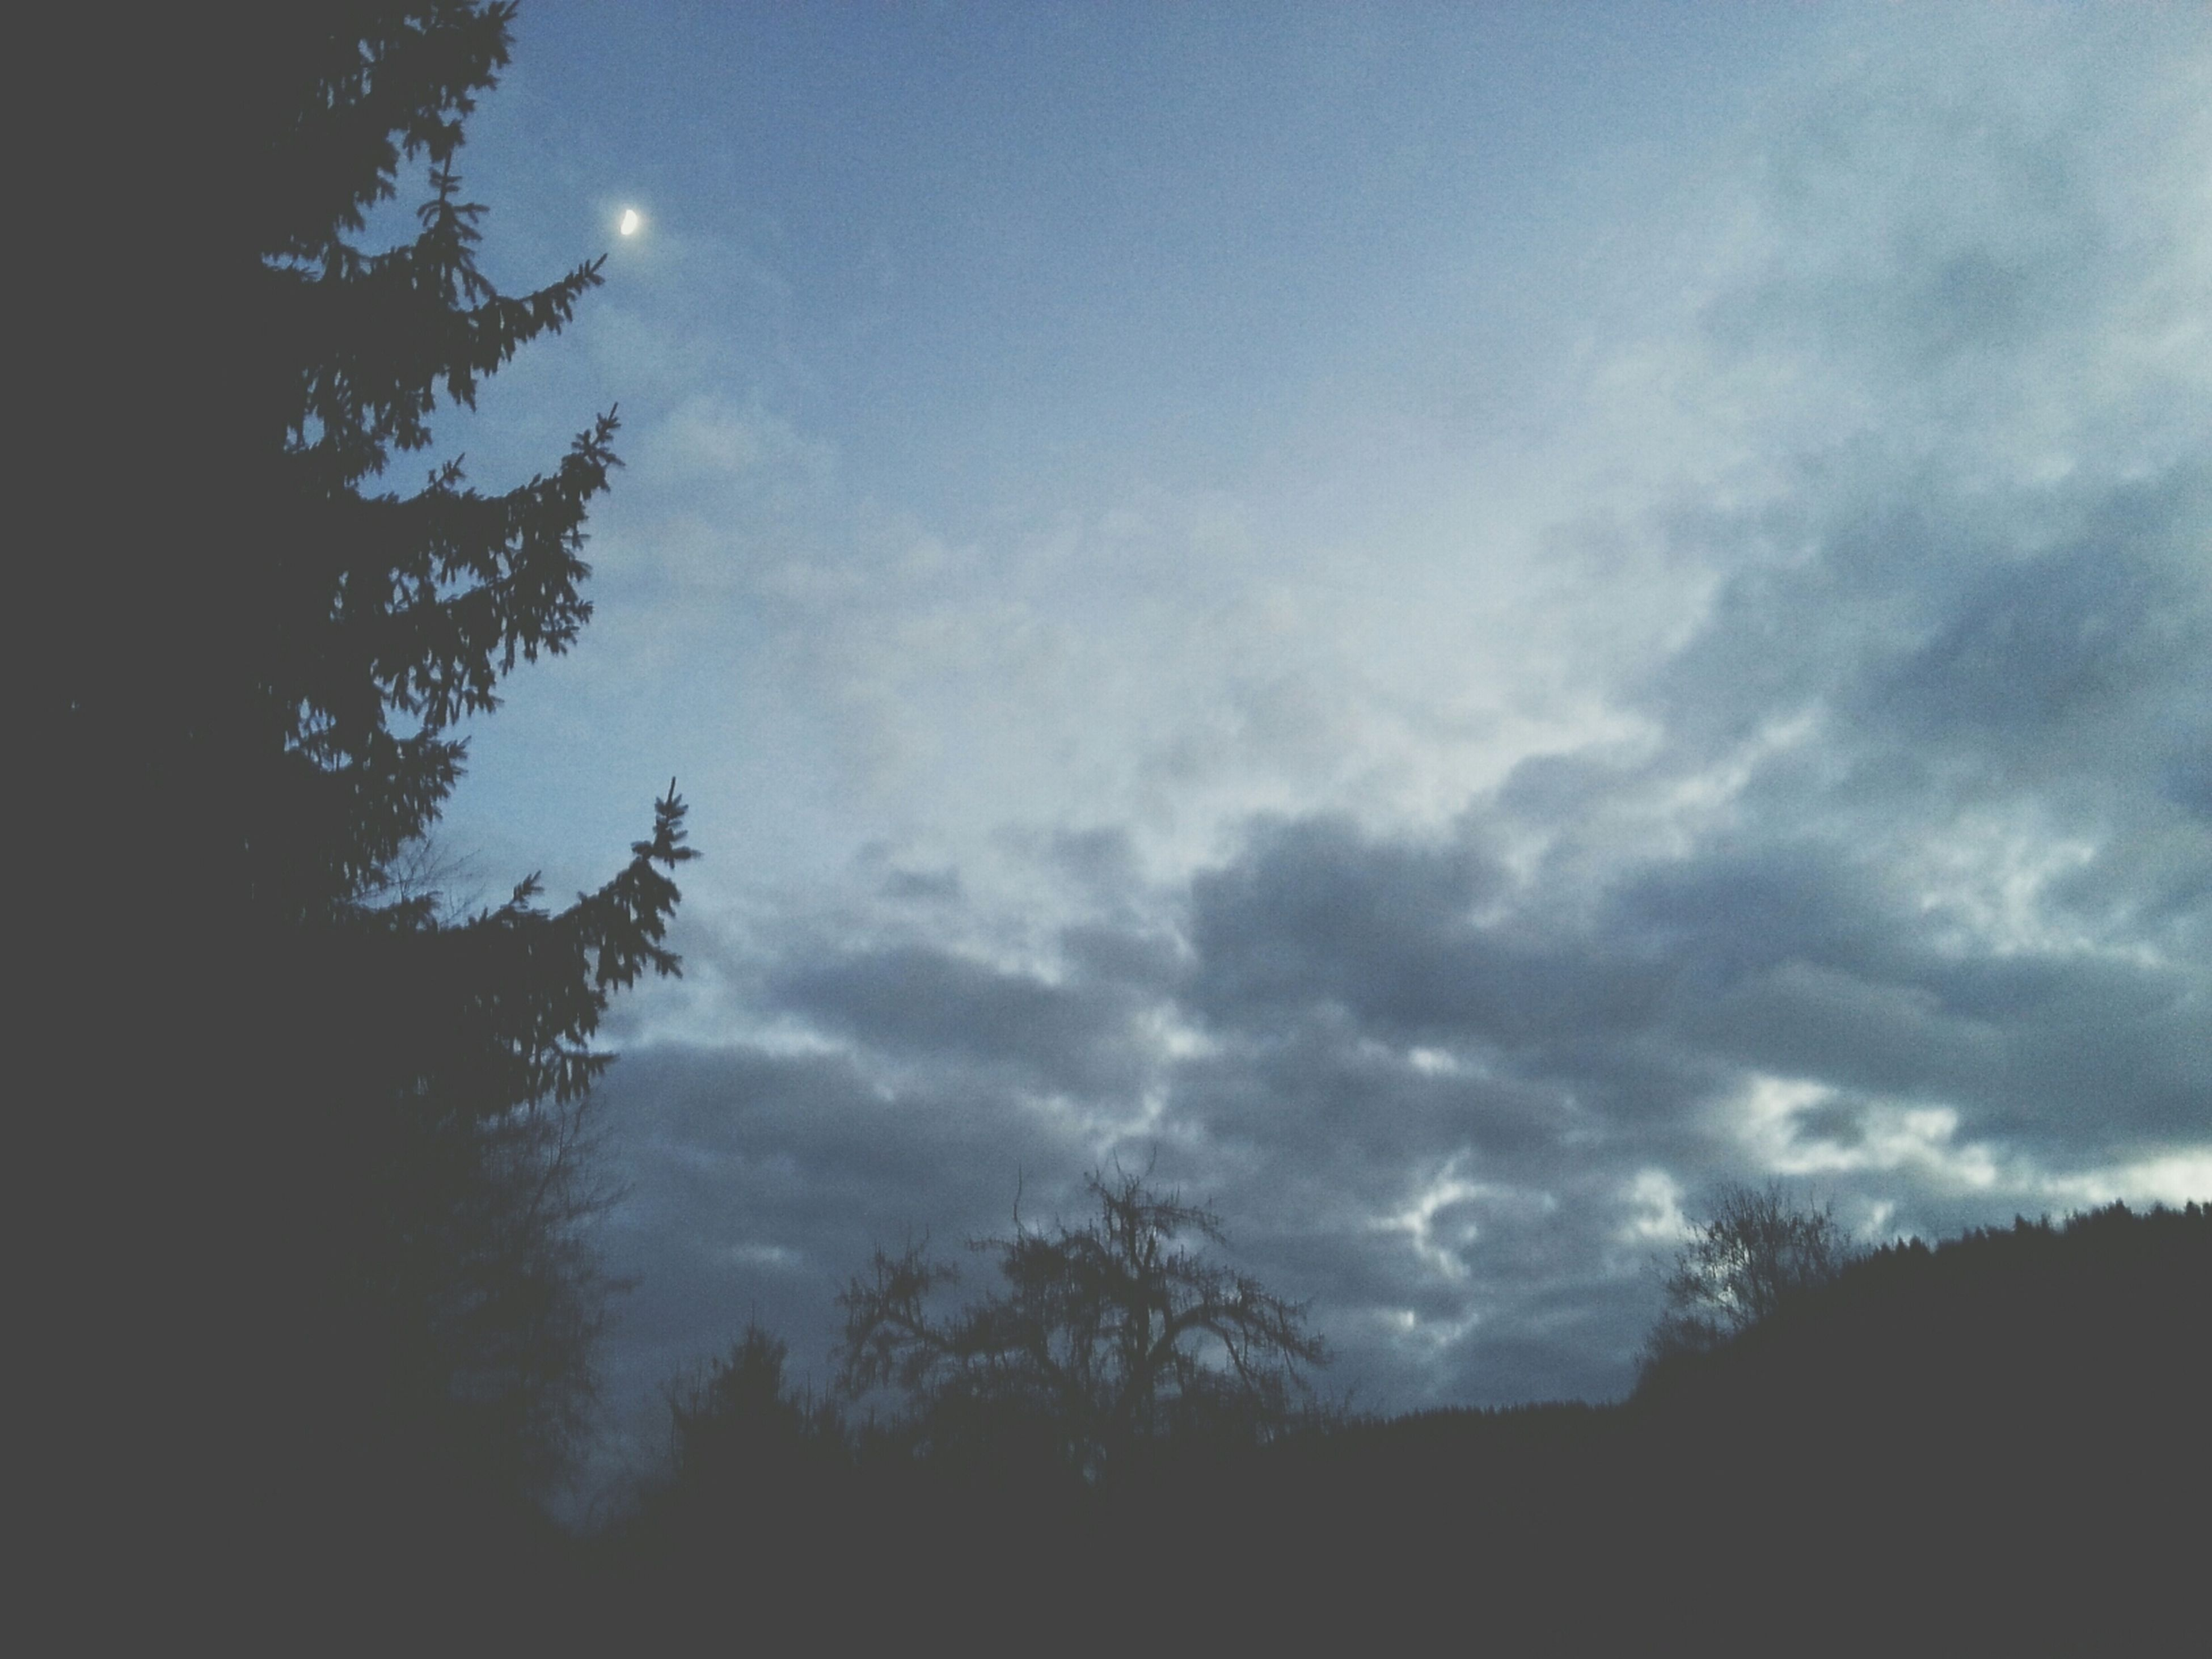 silhouette, sky, tree, tranquility, low angle view, beauty in nature, tranquil scene, scenics, cloud - sky, nature, cloudy, dusk, cloud, idyllic, outdoors, dark, no people, growth, weather, moon